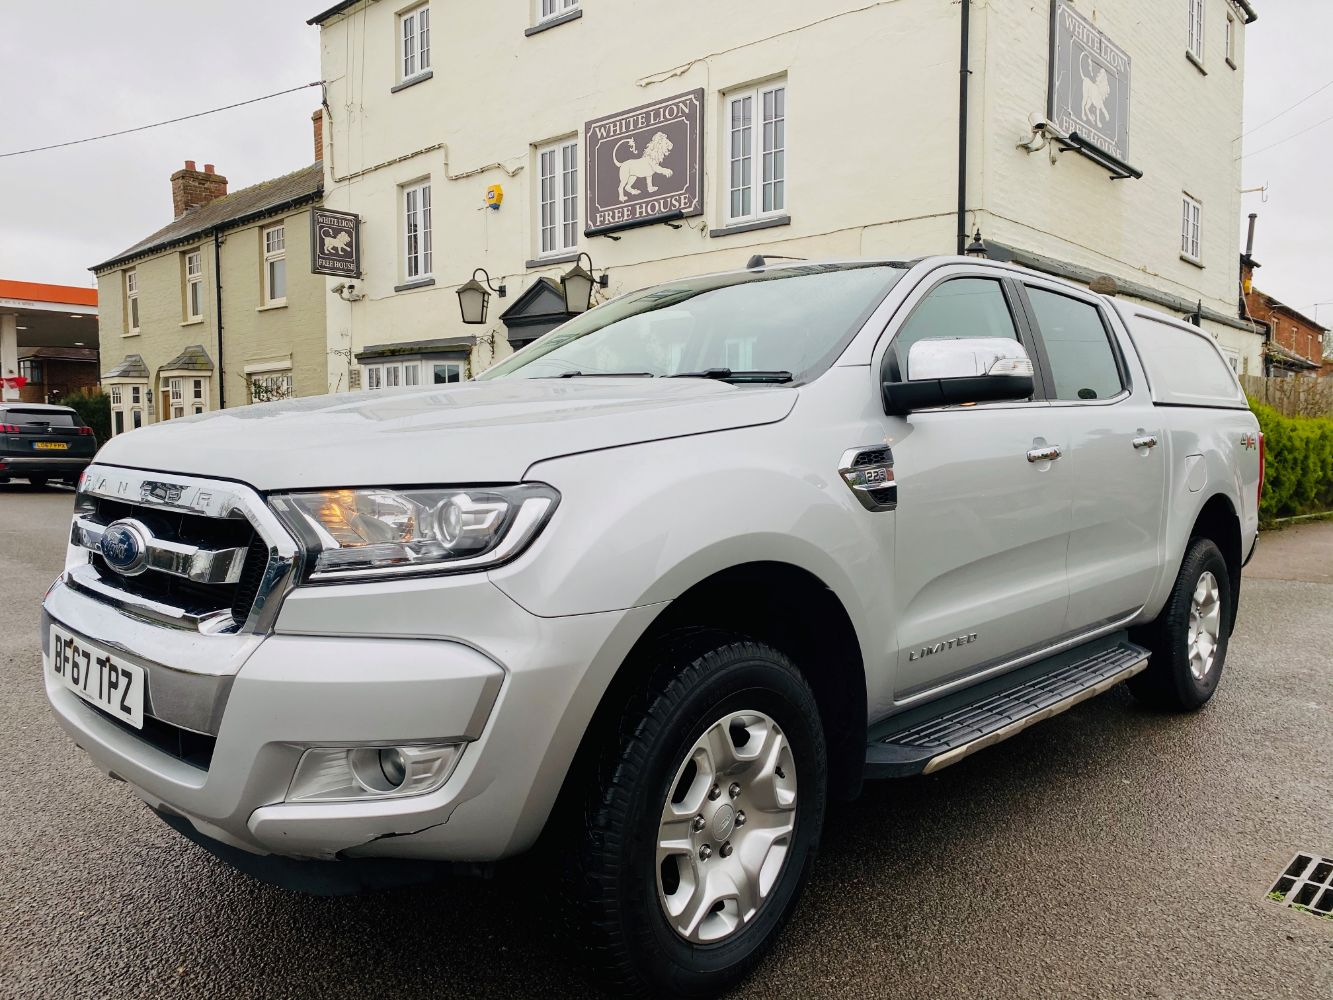 2018 Ford Ranger *D/Cab Pick-Up* - 2017 Mercedes Sprinter 314 Cdi *LWB Luton* (Euro 6) Also Featuring Many: Cars, Commercials & 4x4's !!!